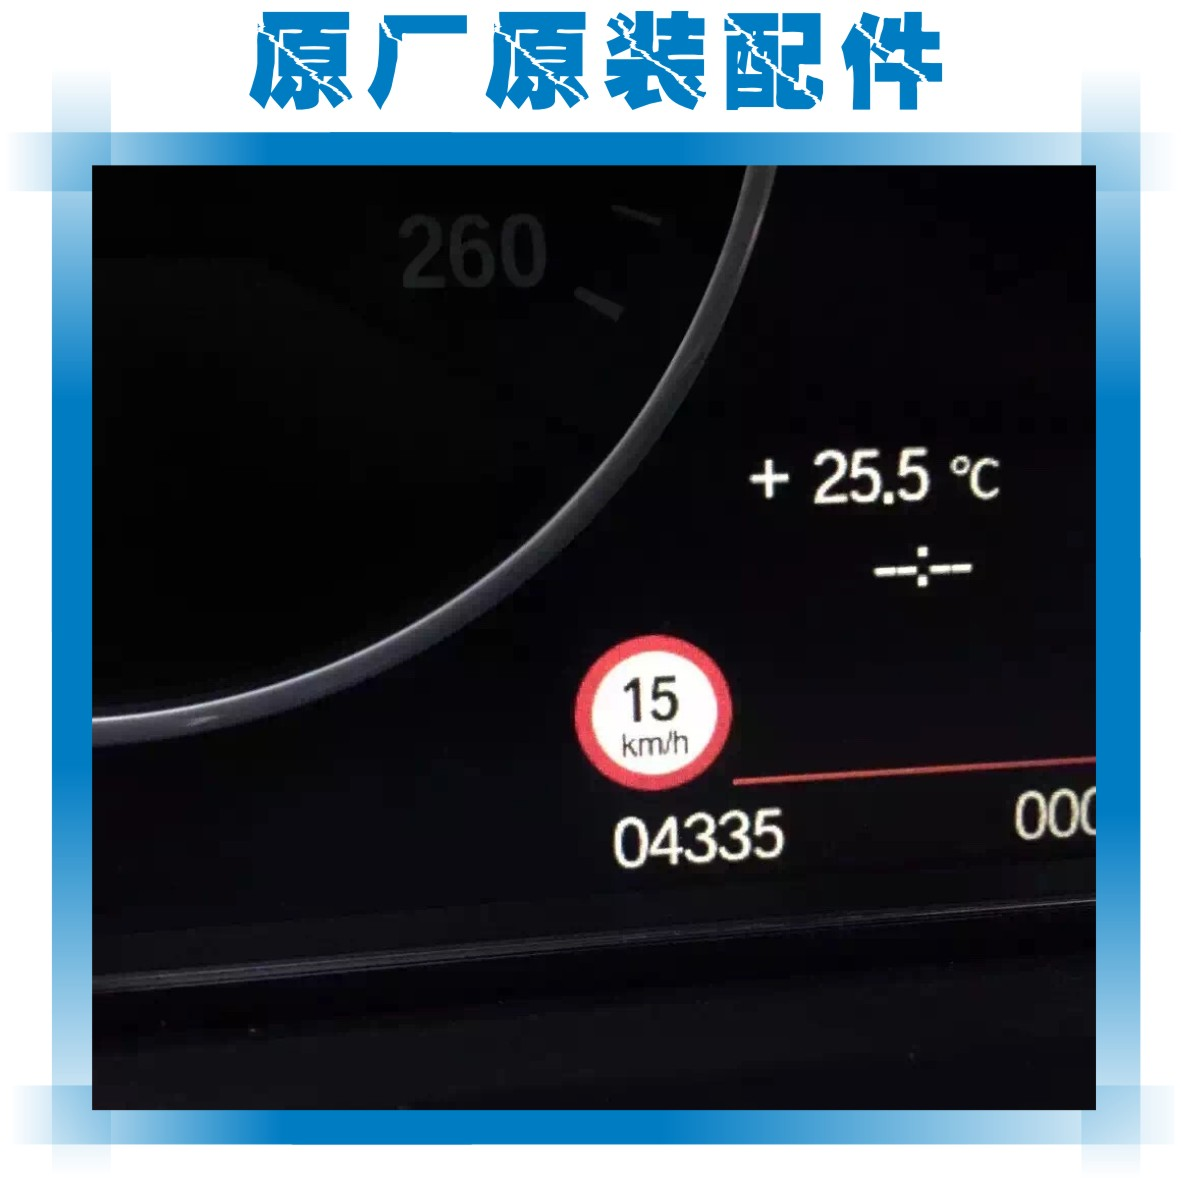 Speed display module 5 series bmw car speed prompt information system 3 series 1 series 7 series X3X5X1X7